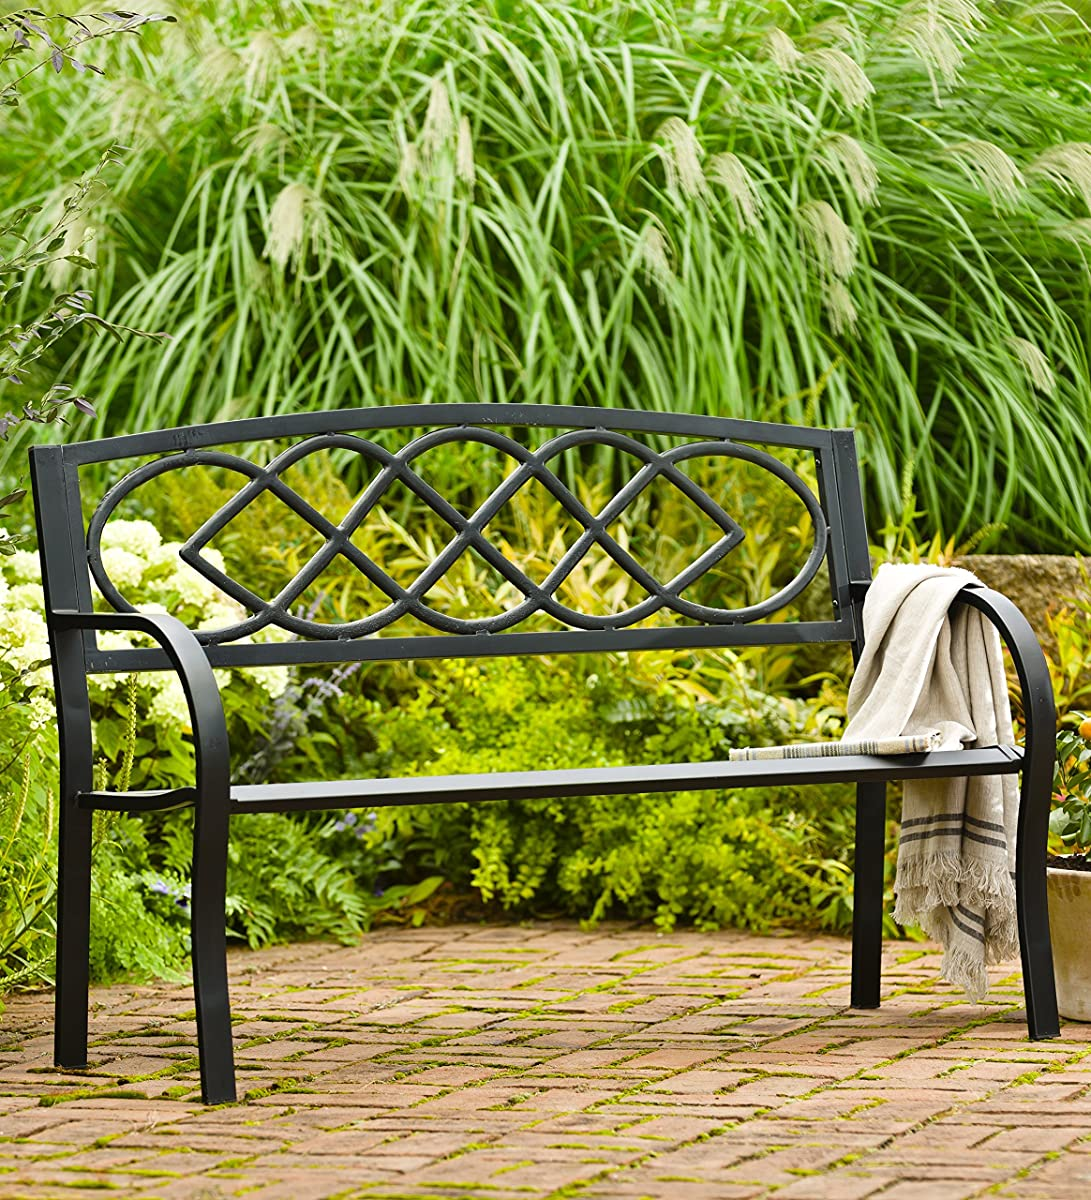 Celtic Knot Patio Garden Bench Park Yard Outdoor Furniture, Cast and Tubular Iron Metal, Powder Coat Black Finish, Classic Decorative Design, Easy Assembly 50 L x 17 1/2 W x 34 1/2 H